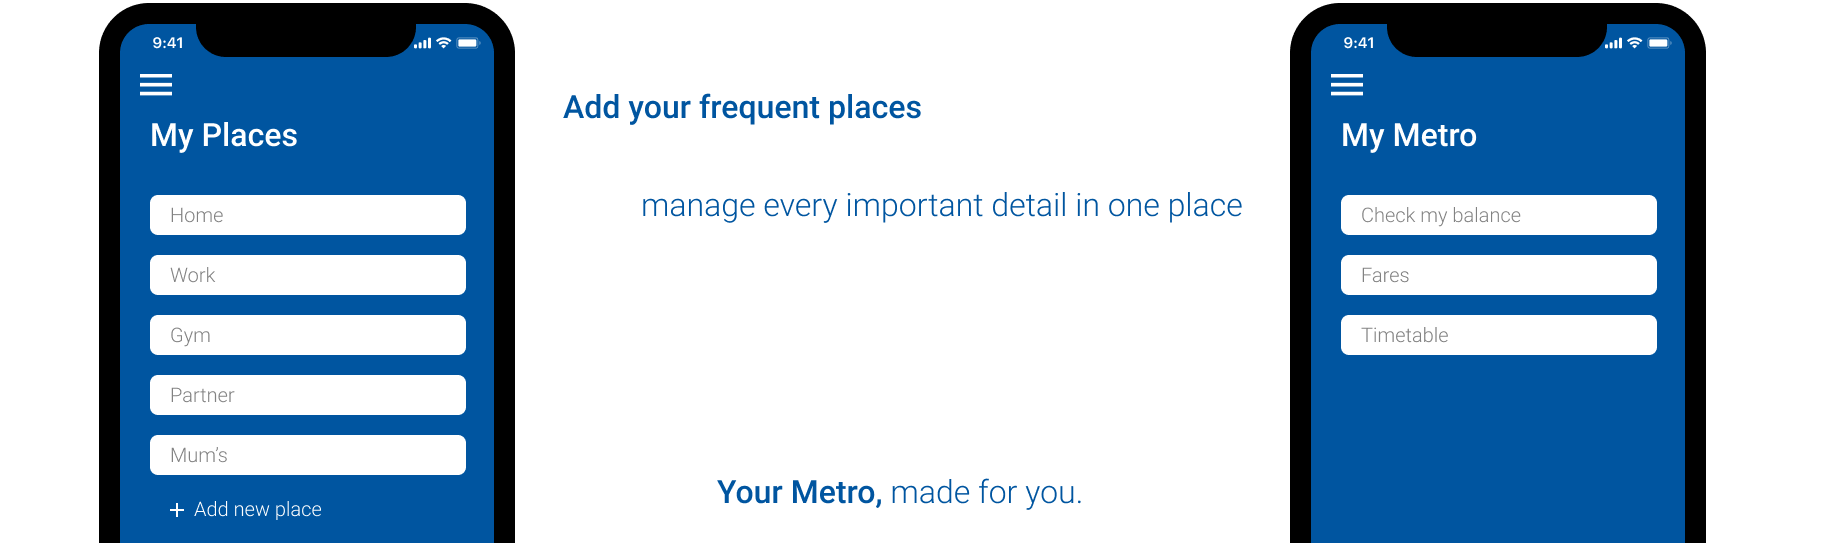 frequent places details screen